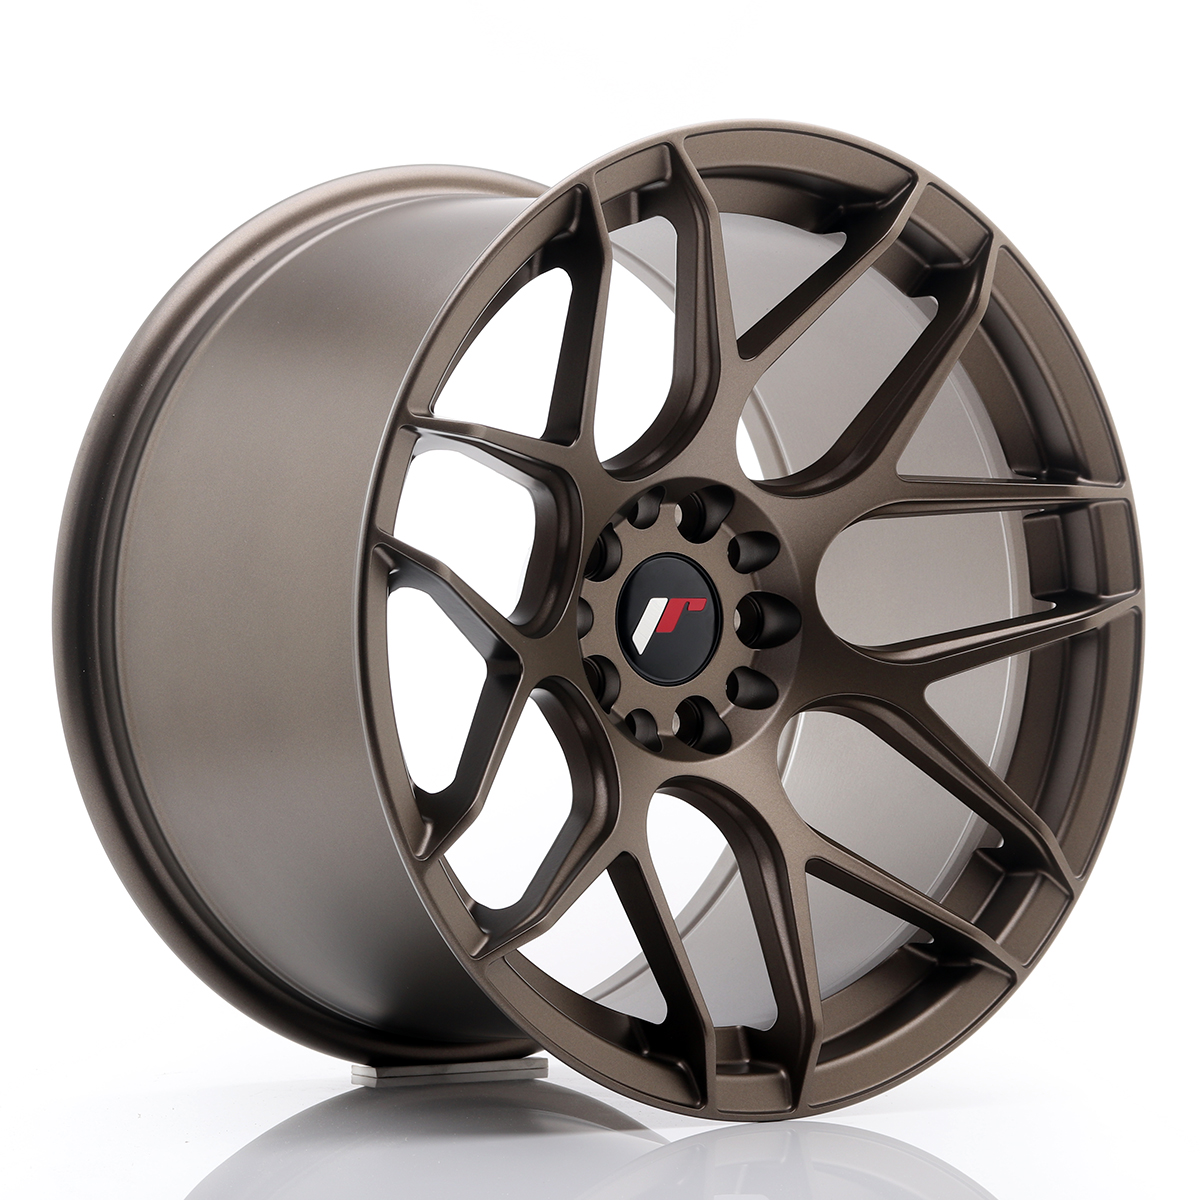 Japan Racing JR Wheels JR18 18x10.5 ET22 5x120 5x114.3 Bronze